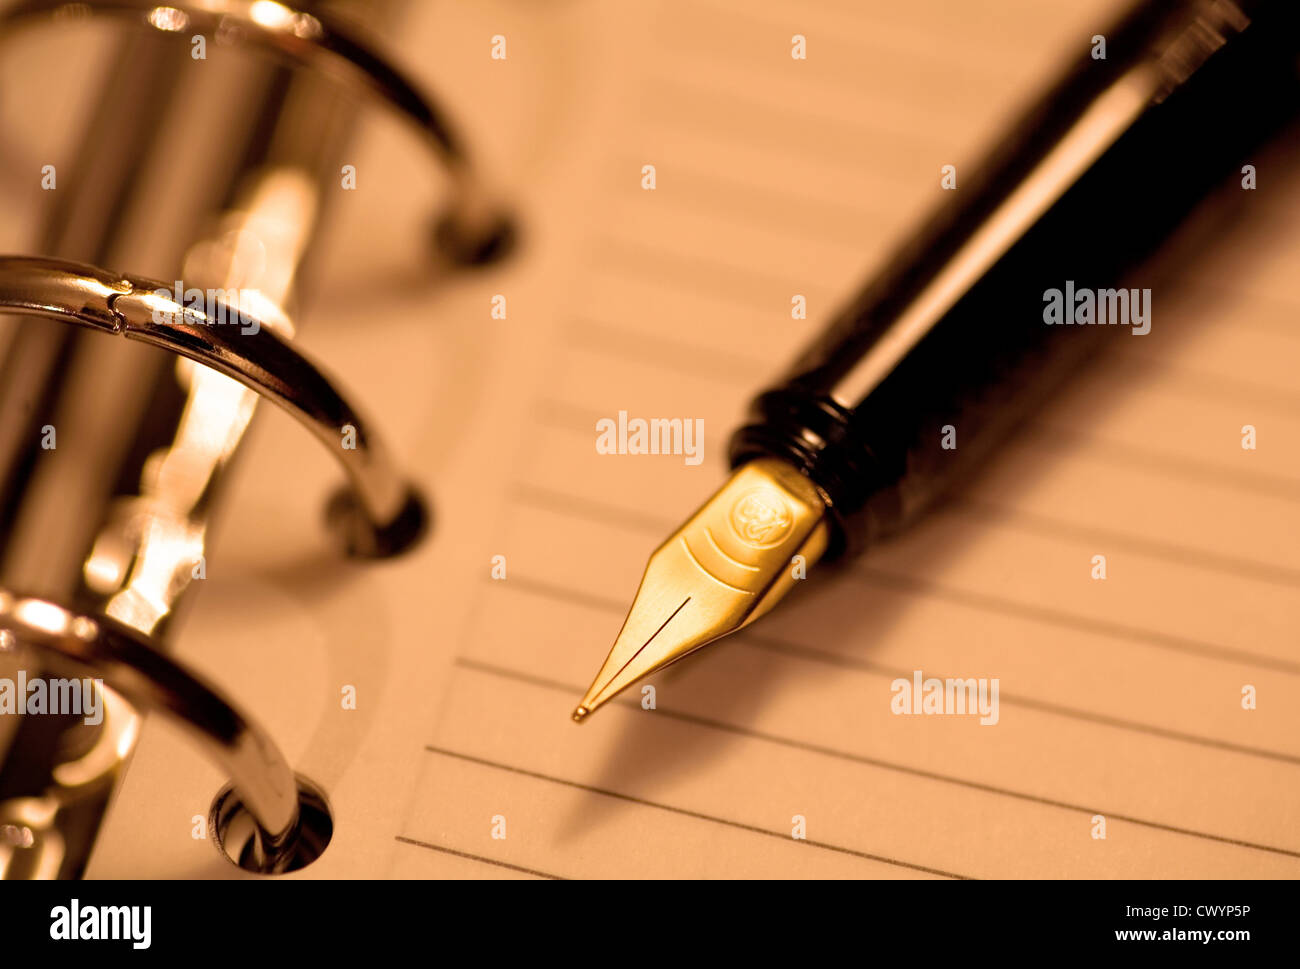 Stylograph on notepad - Stock Image